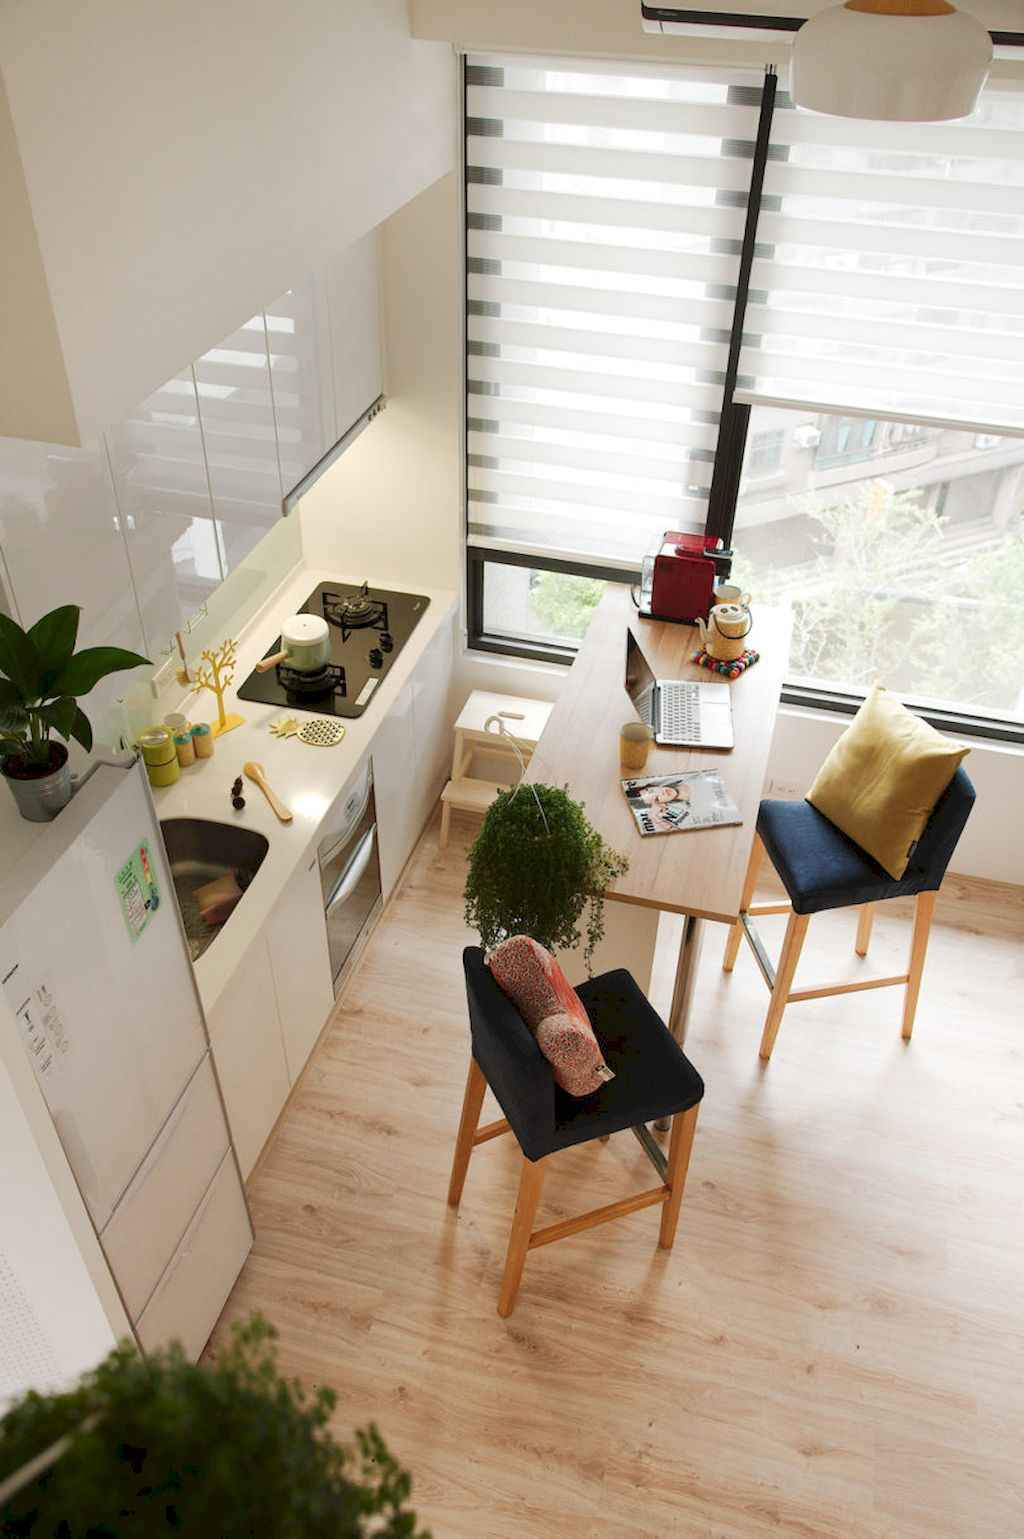 Couples first apartment decorating ideas (82)